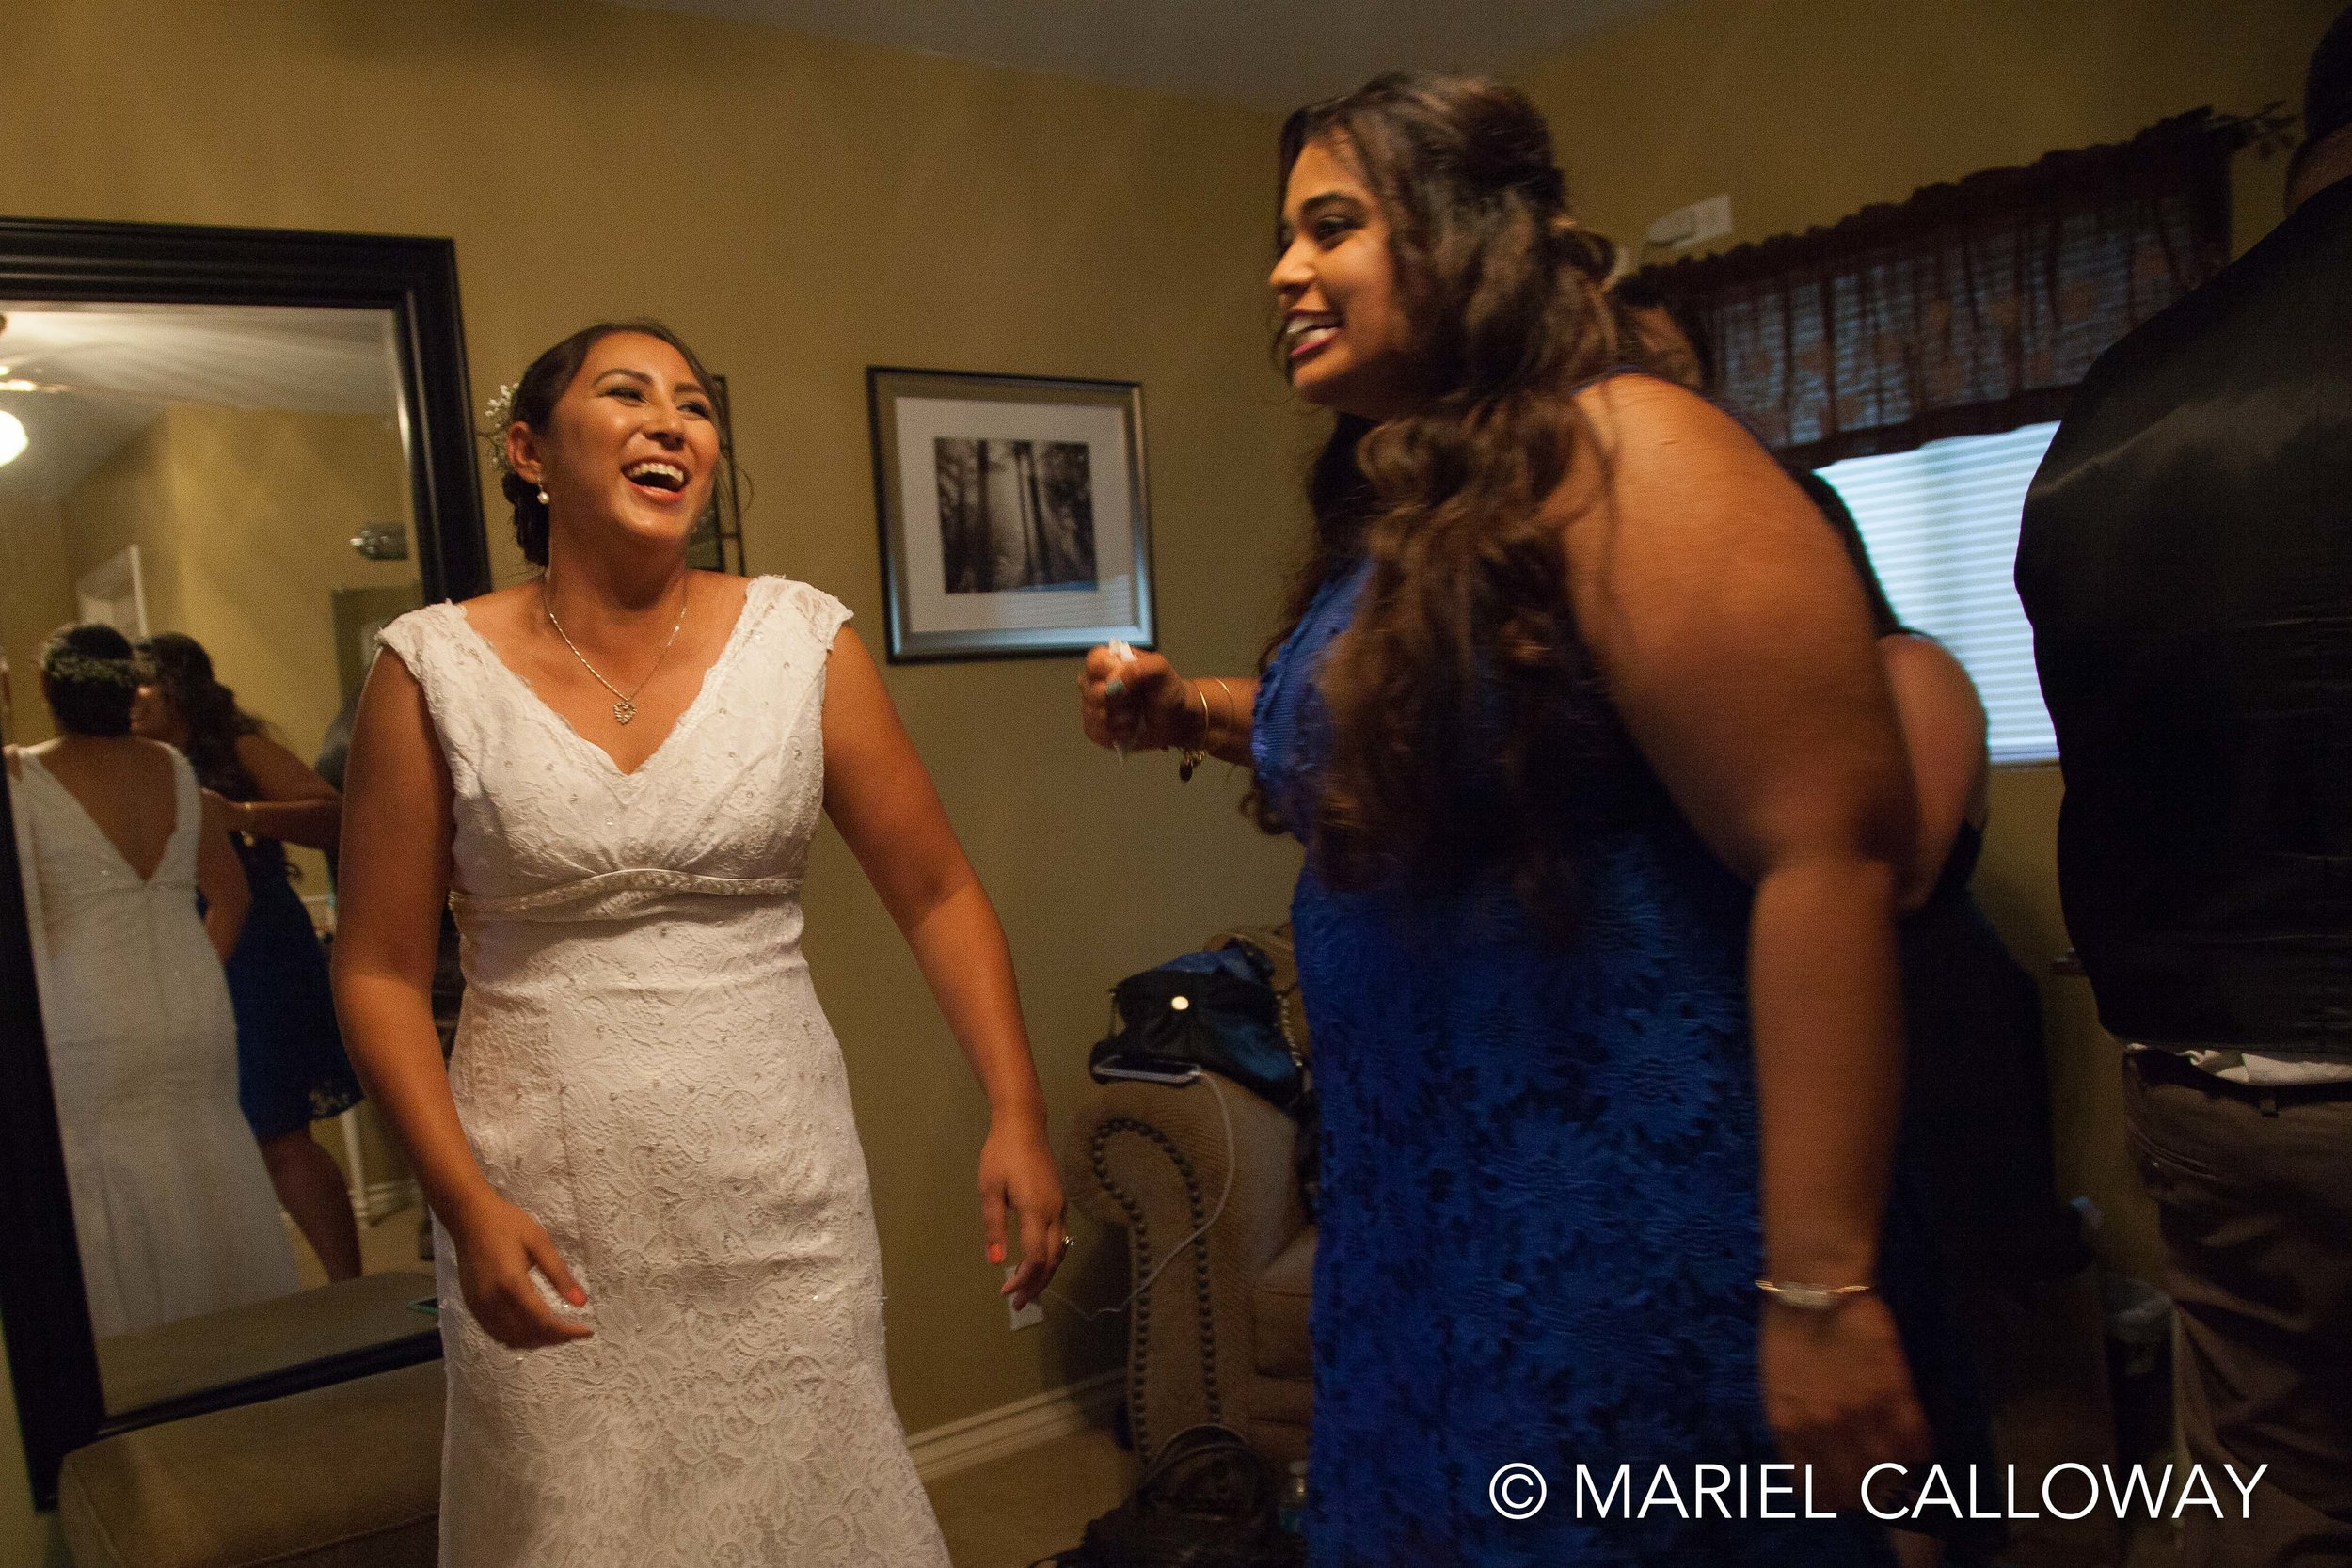 Mariel-Calloway-Wedding-Photographer-Los-Angeles-NatRory-7.jpg